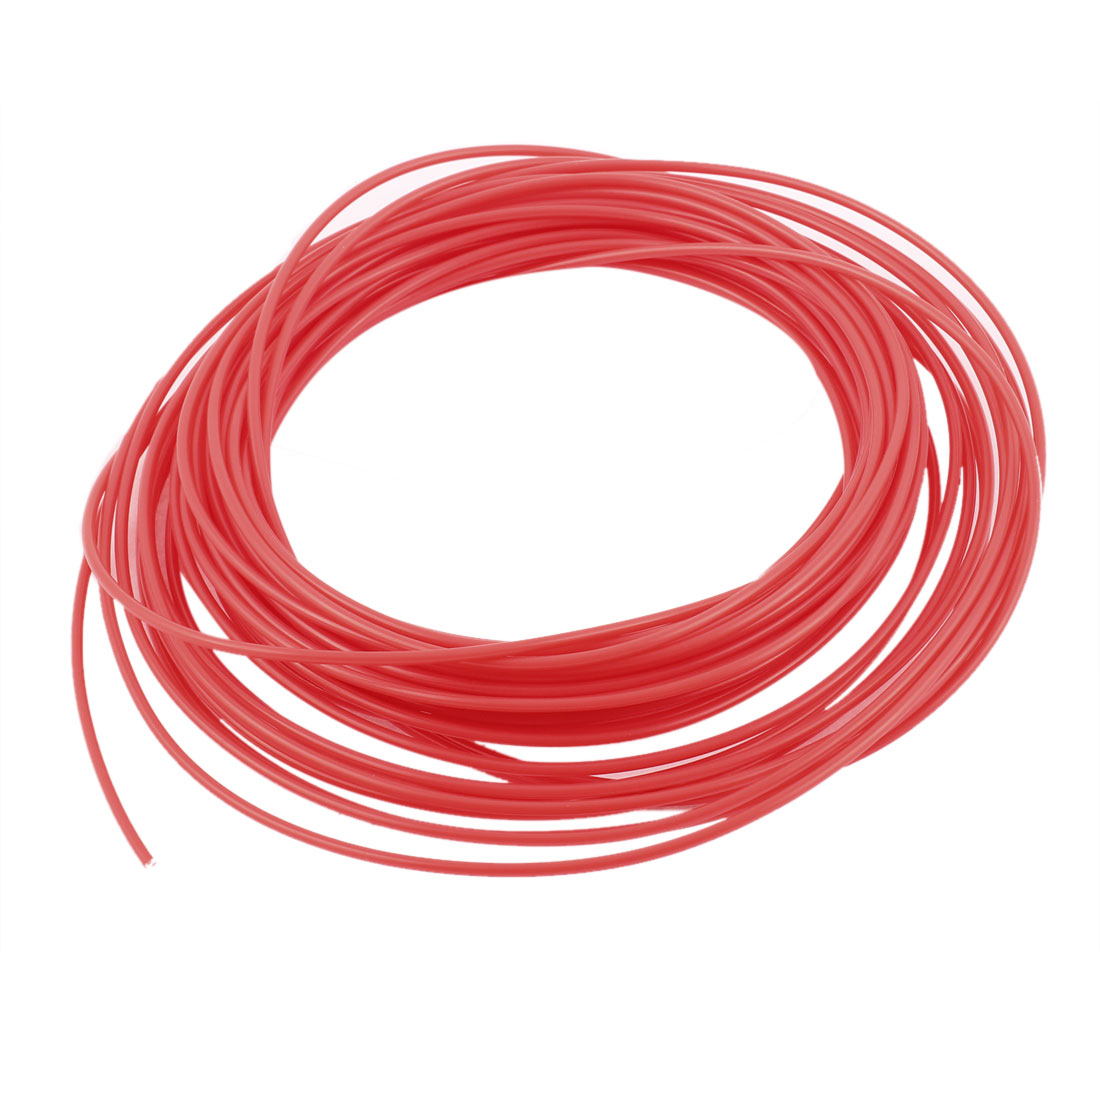 10m 3D Printer Pen Painting Filament Refills ABS Printing Material Fluo Red